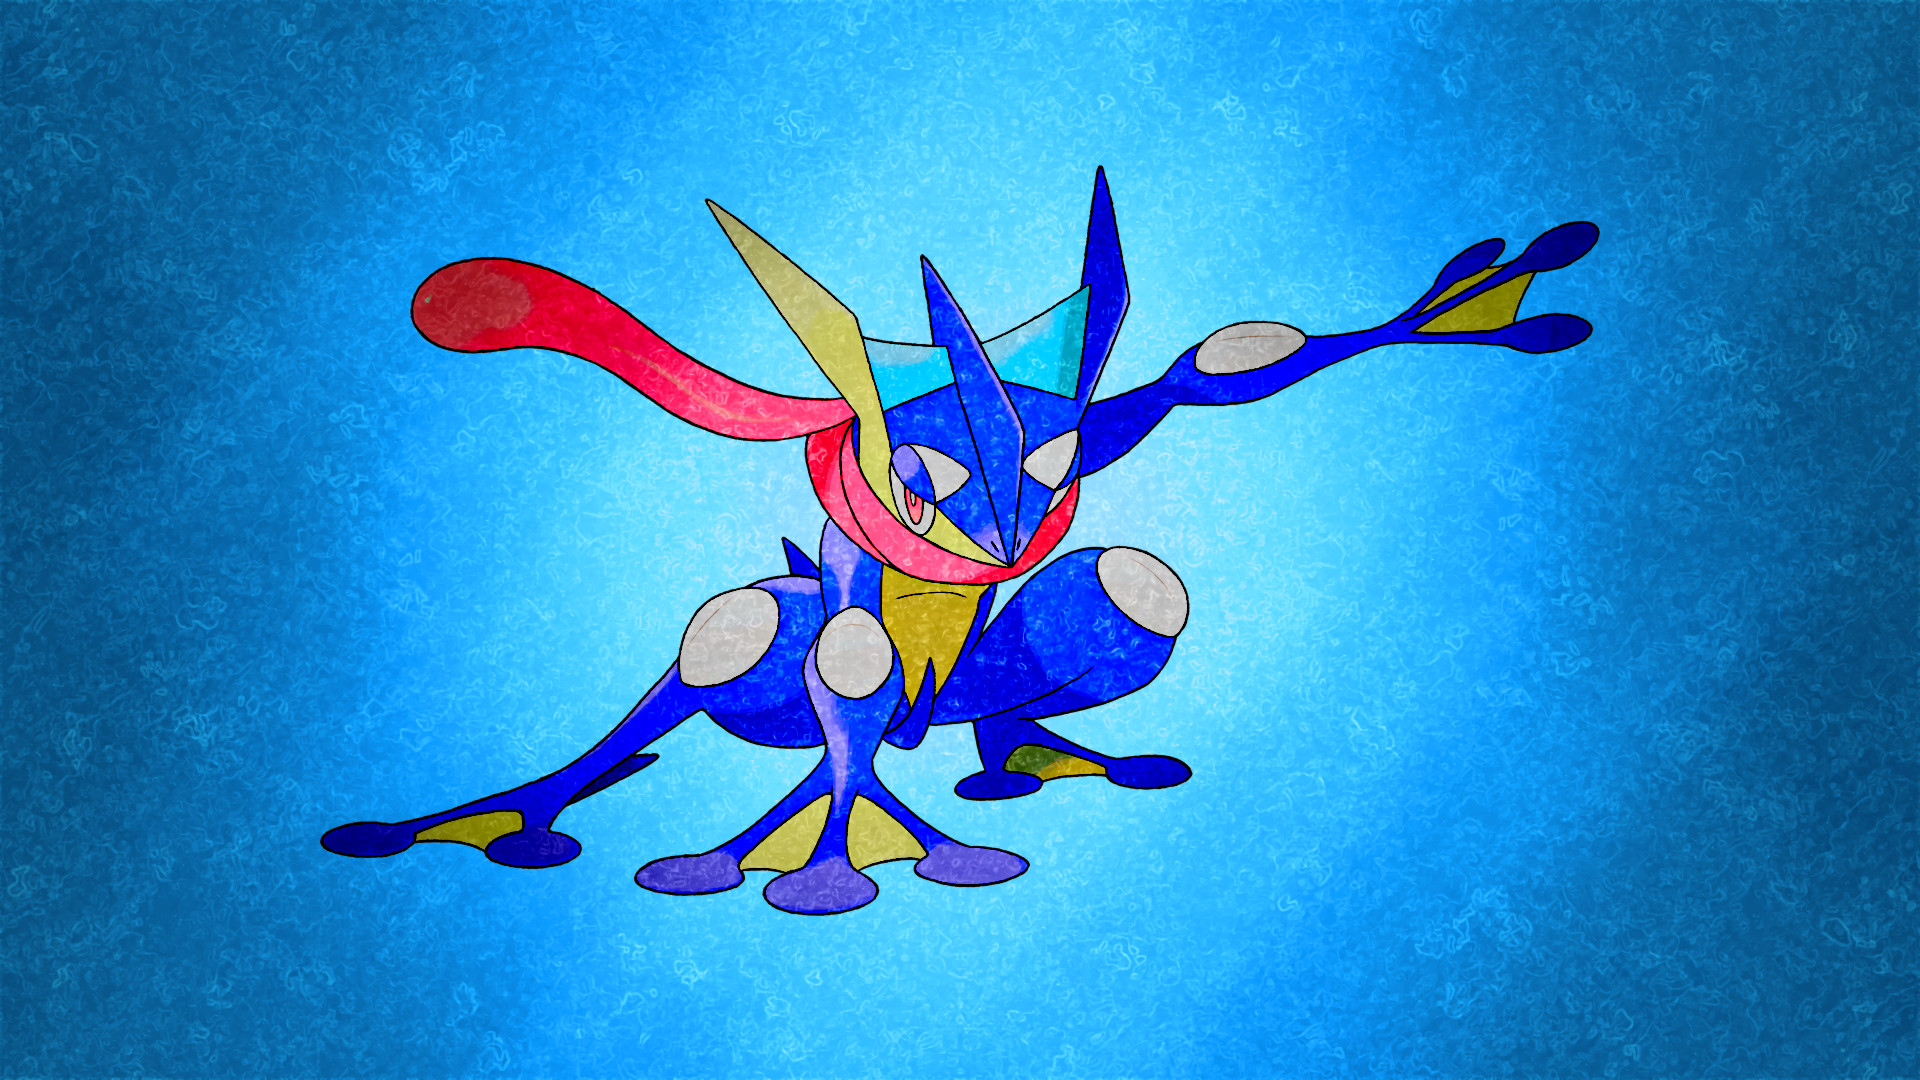 1920x1080 Glench 8 1 Greninja Wallpaper 3 by Glench